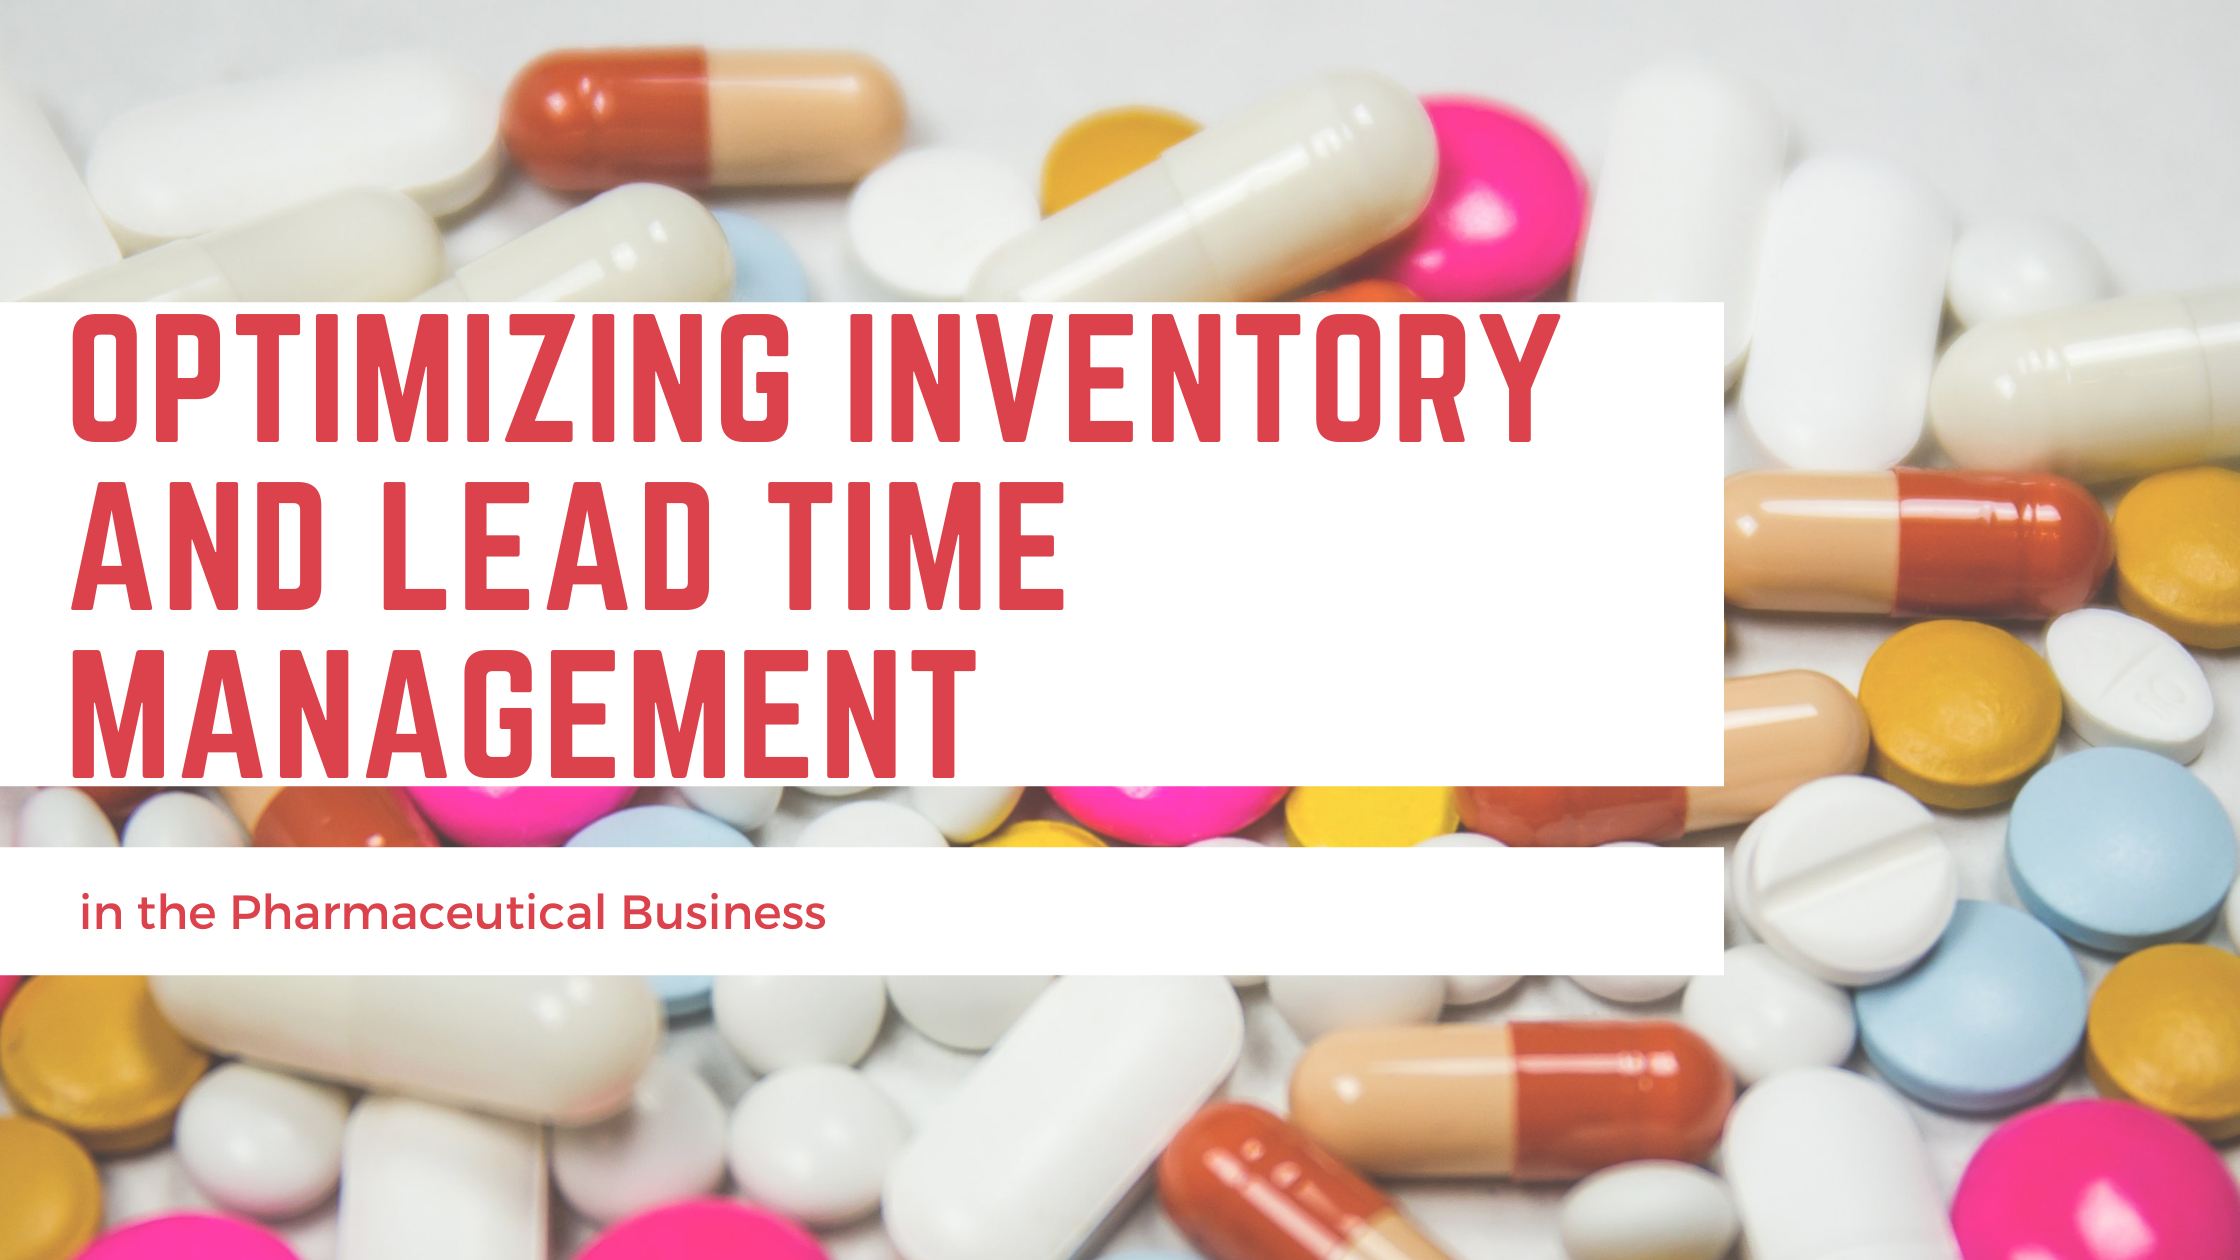 Optimizing Inventory and Lead Time Management in the Pharmaceutical Business